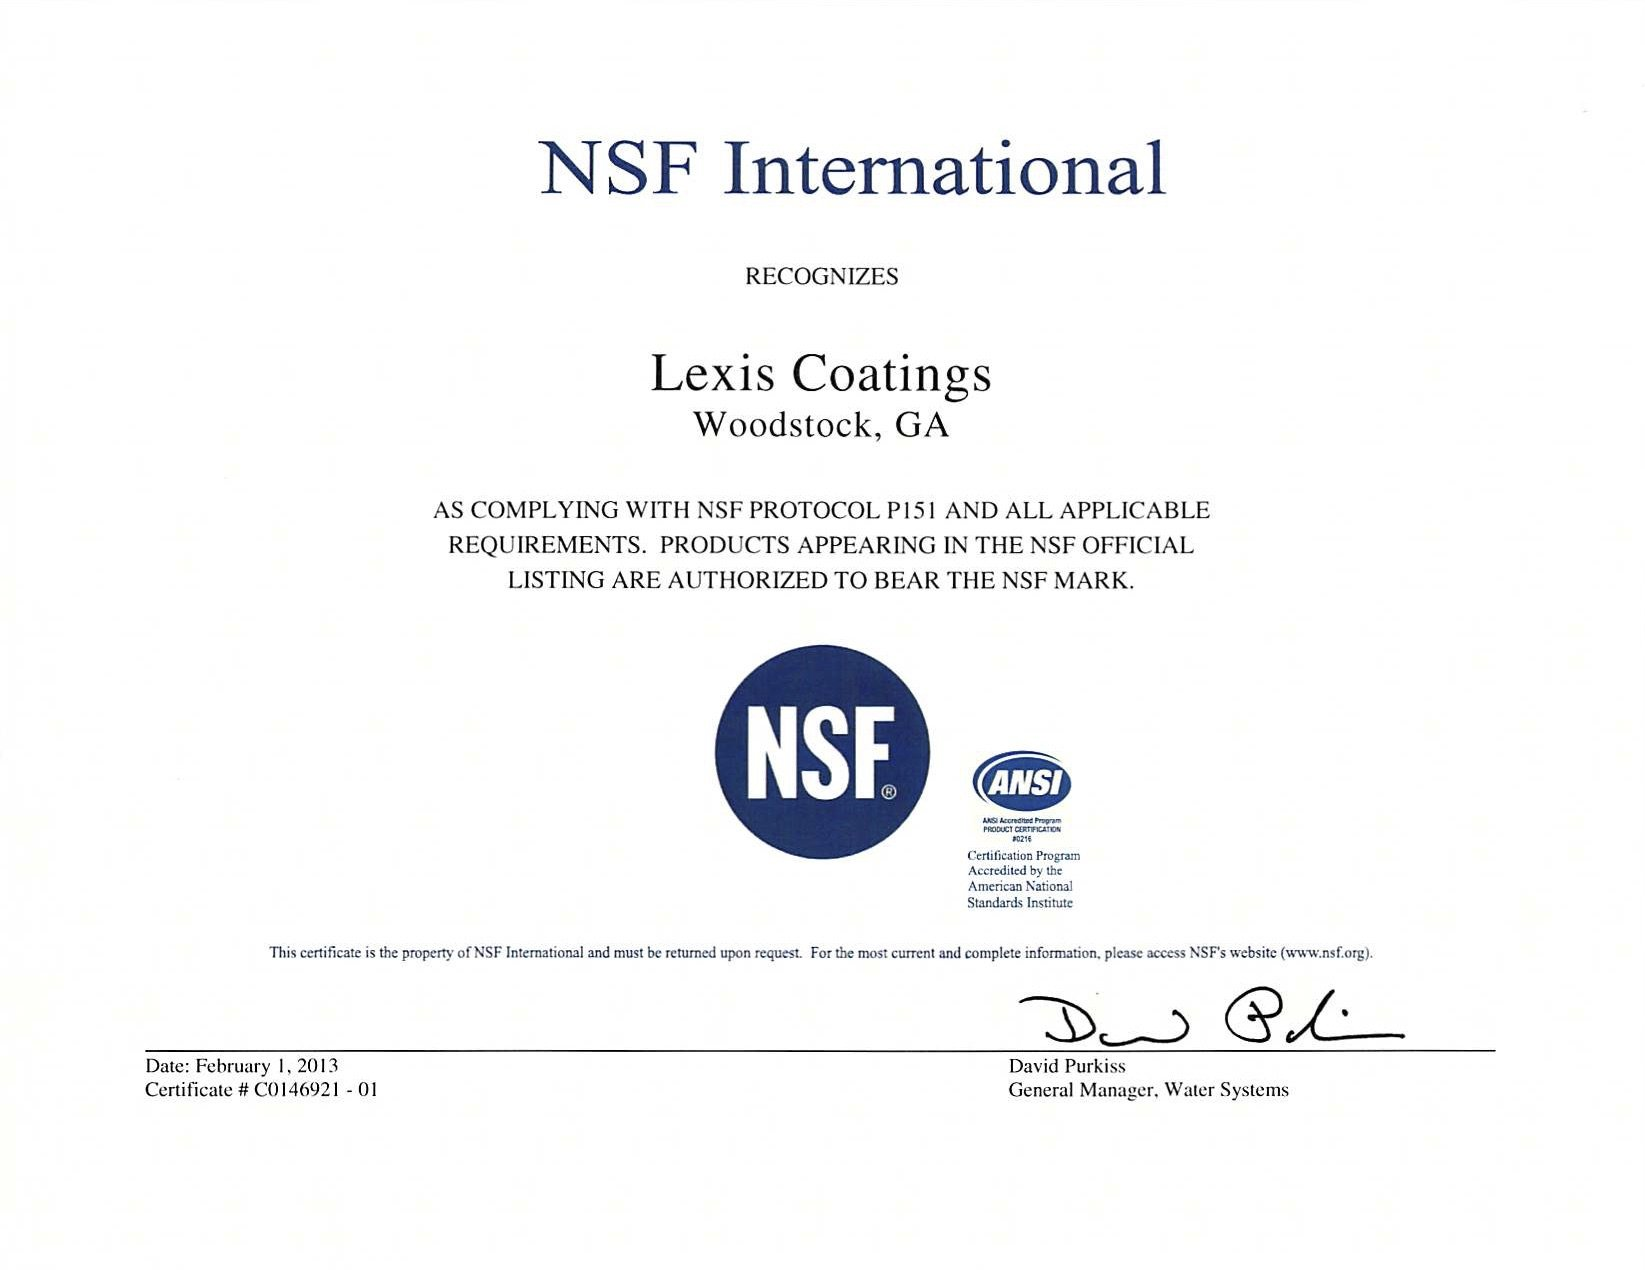 NSF Protocol 151 for Roof Coatings